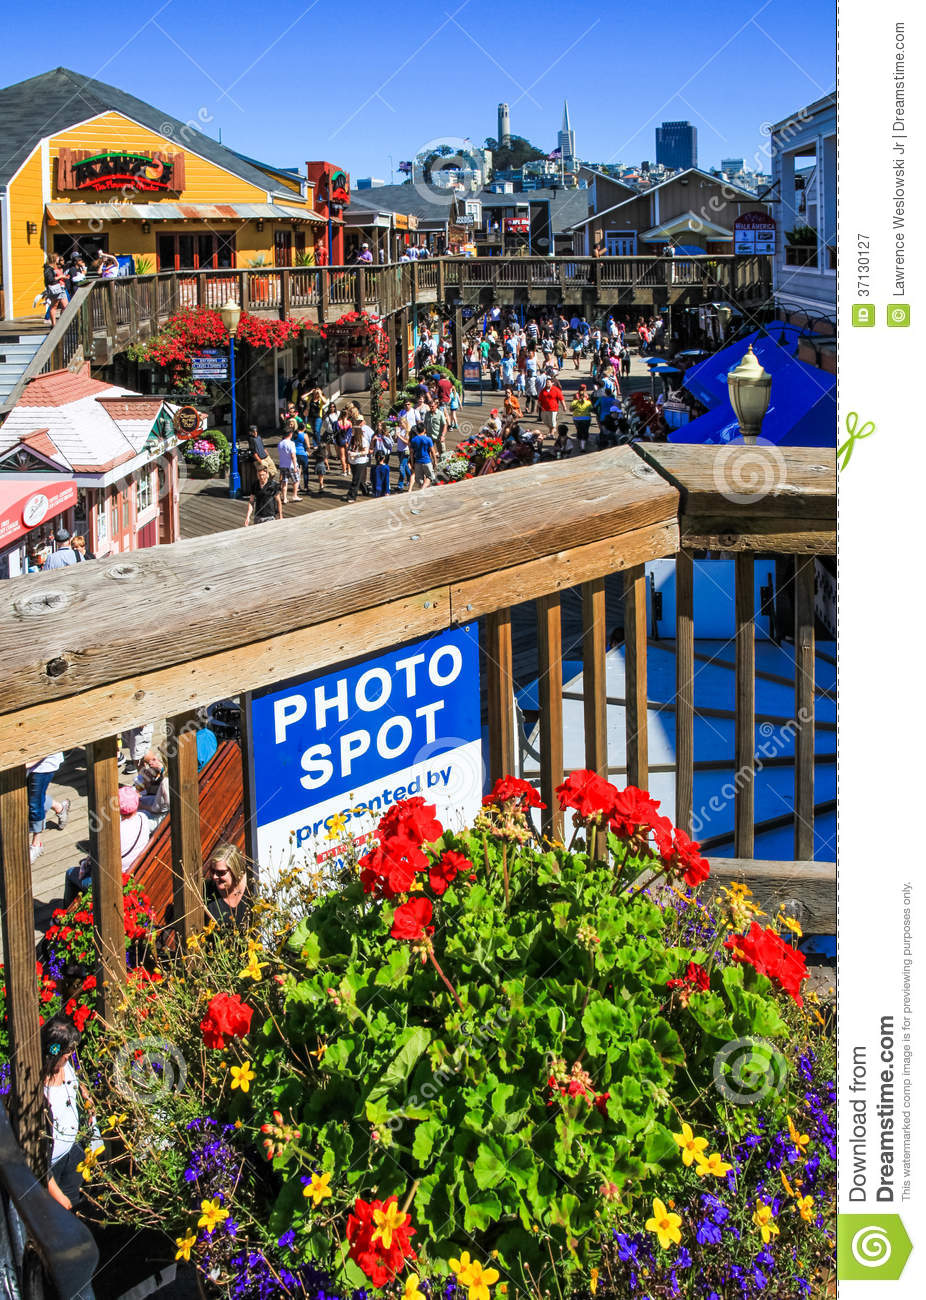 san francisco pier 39 photo spot editorial photography image of